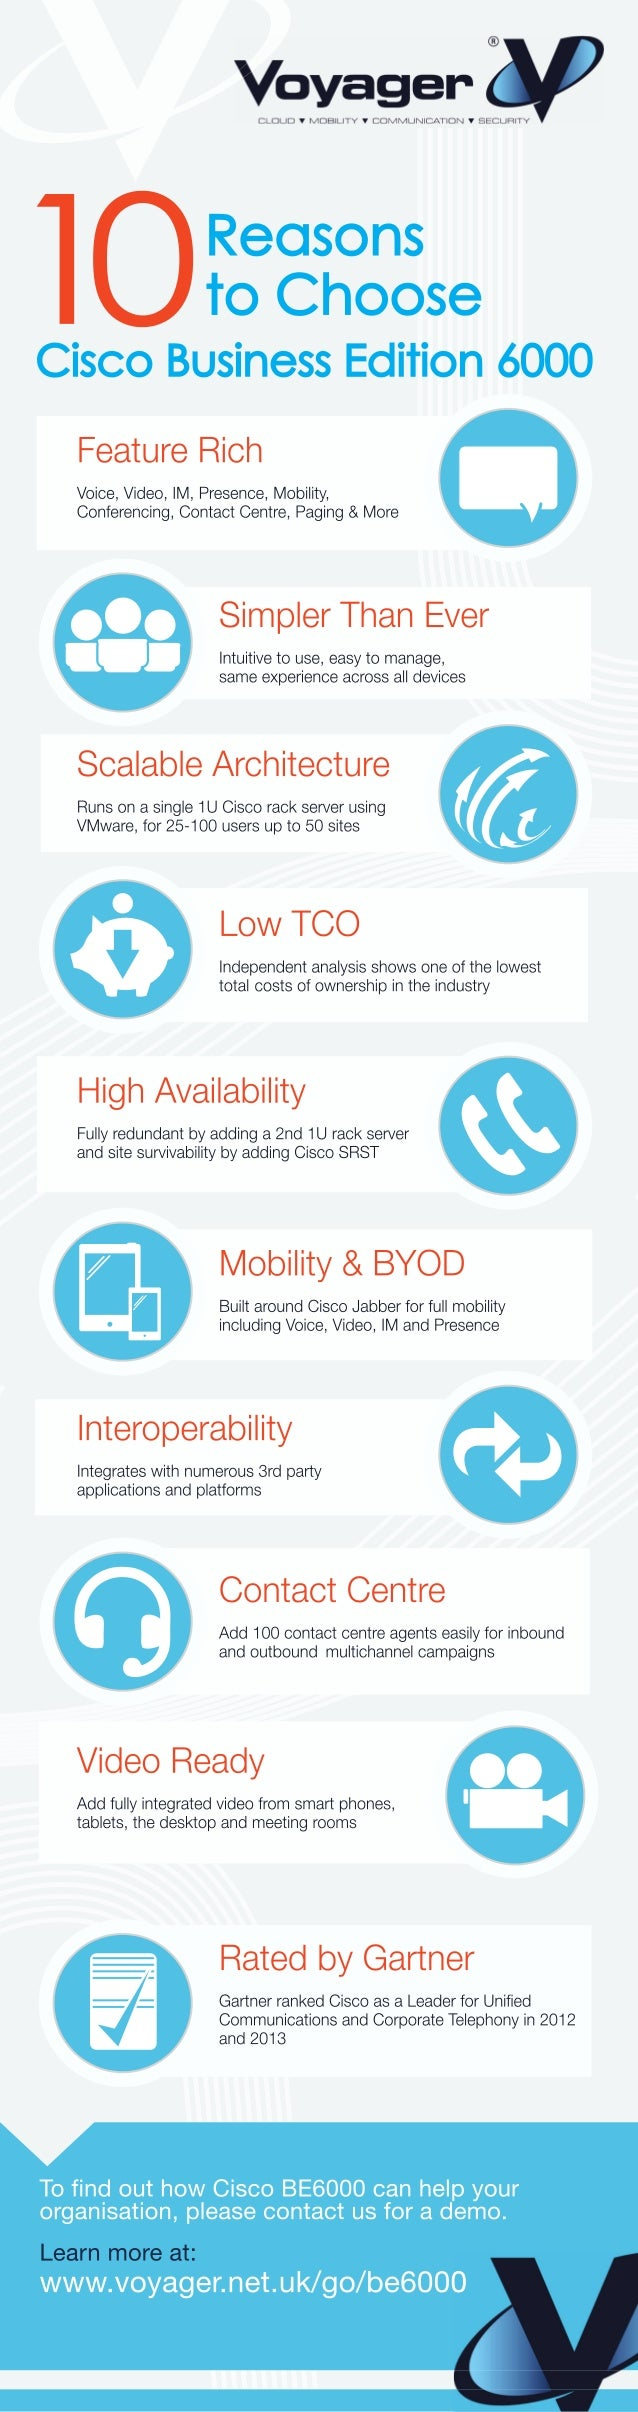 Voyager Networks Infographic 10 Reasons To Choose Cisco